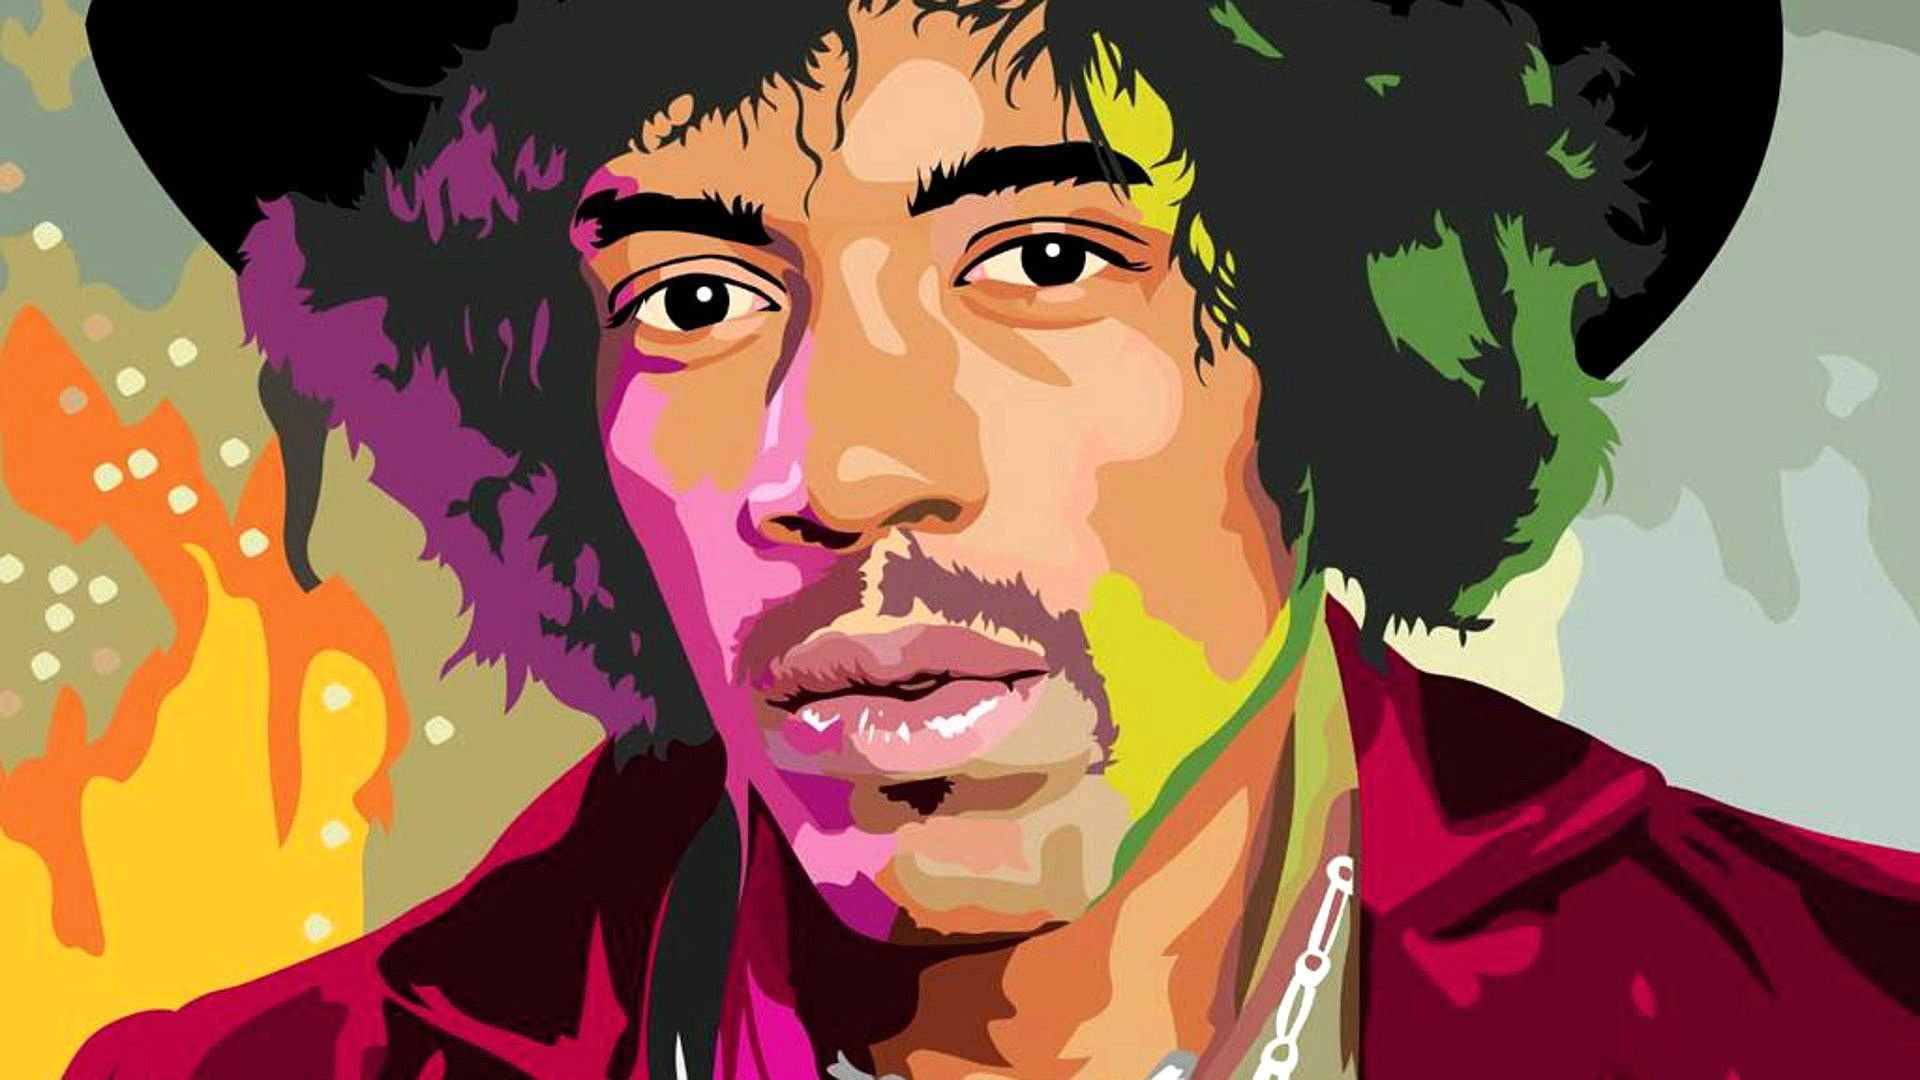 Wallpaper jimi hendrix hd backgrounds pic wpe003494 wallpaper download altavistaventures Images